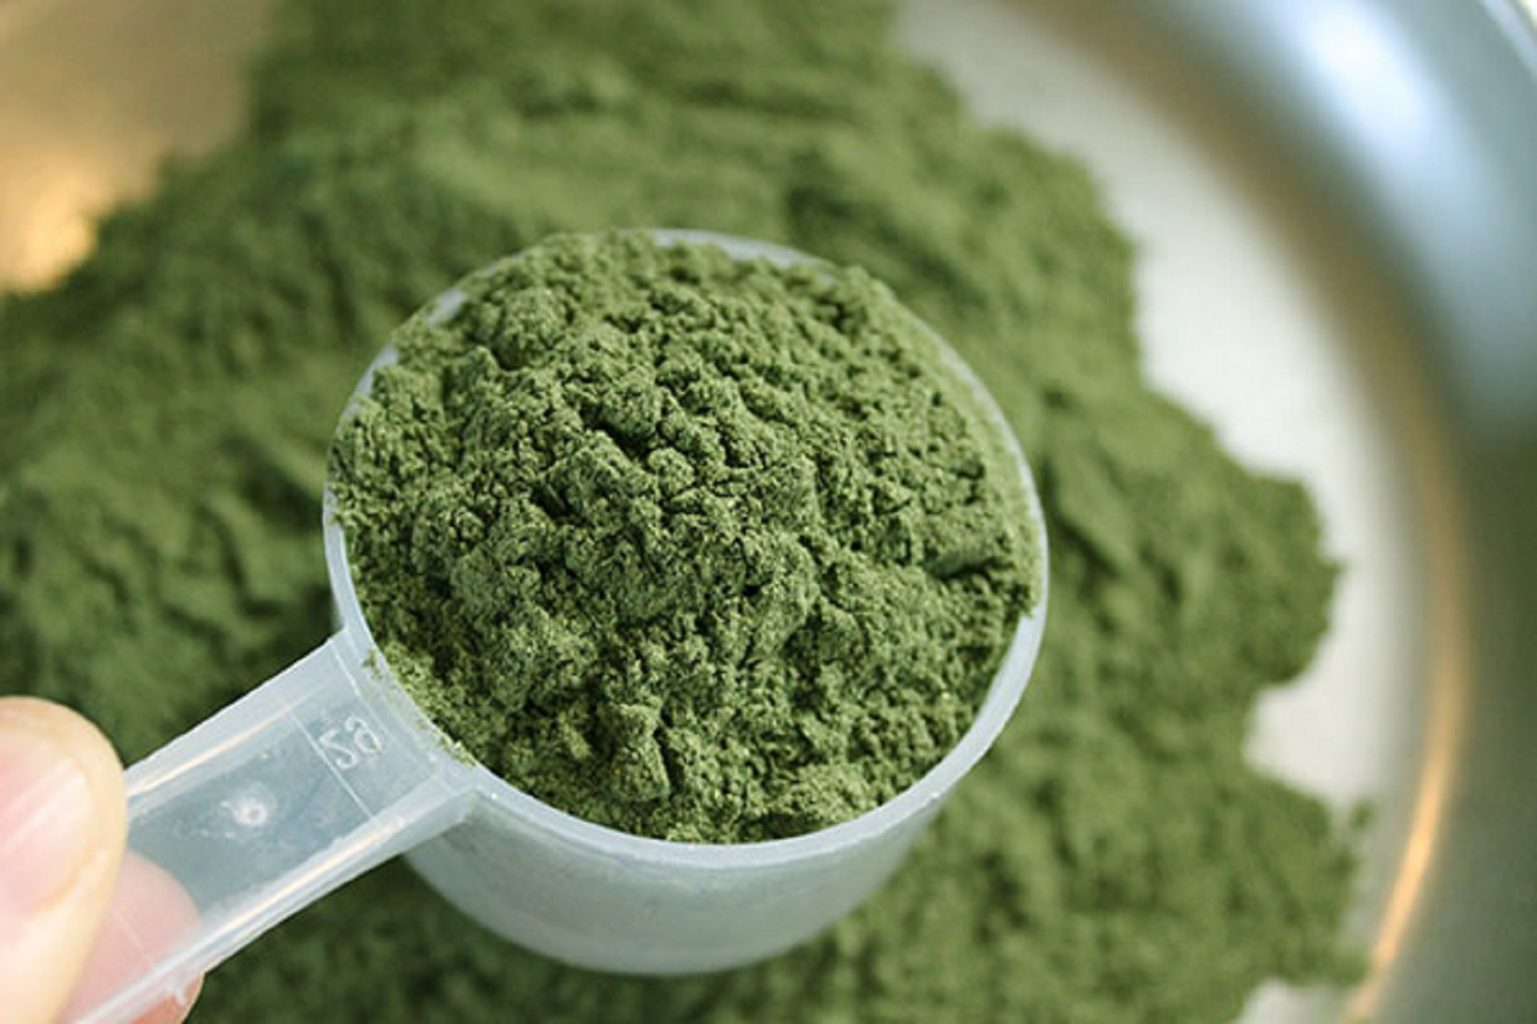 New Psychoactive Substances and Kratom Effects on Users